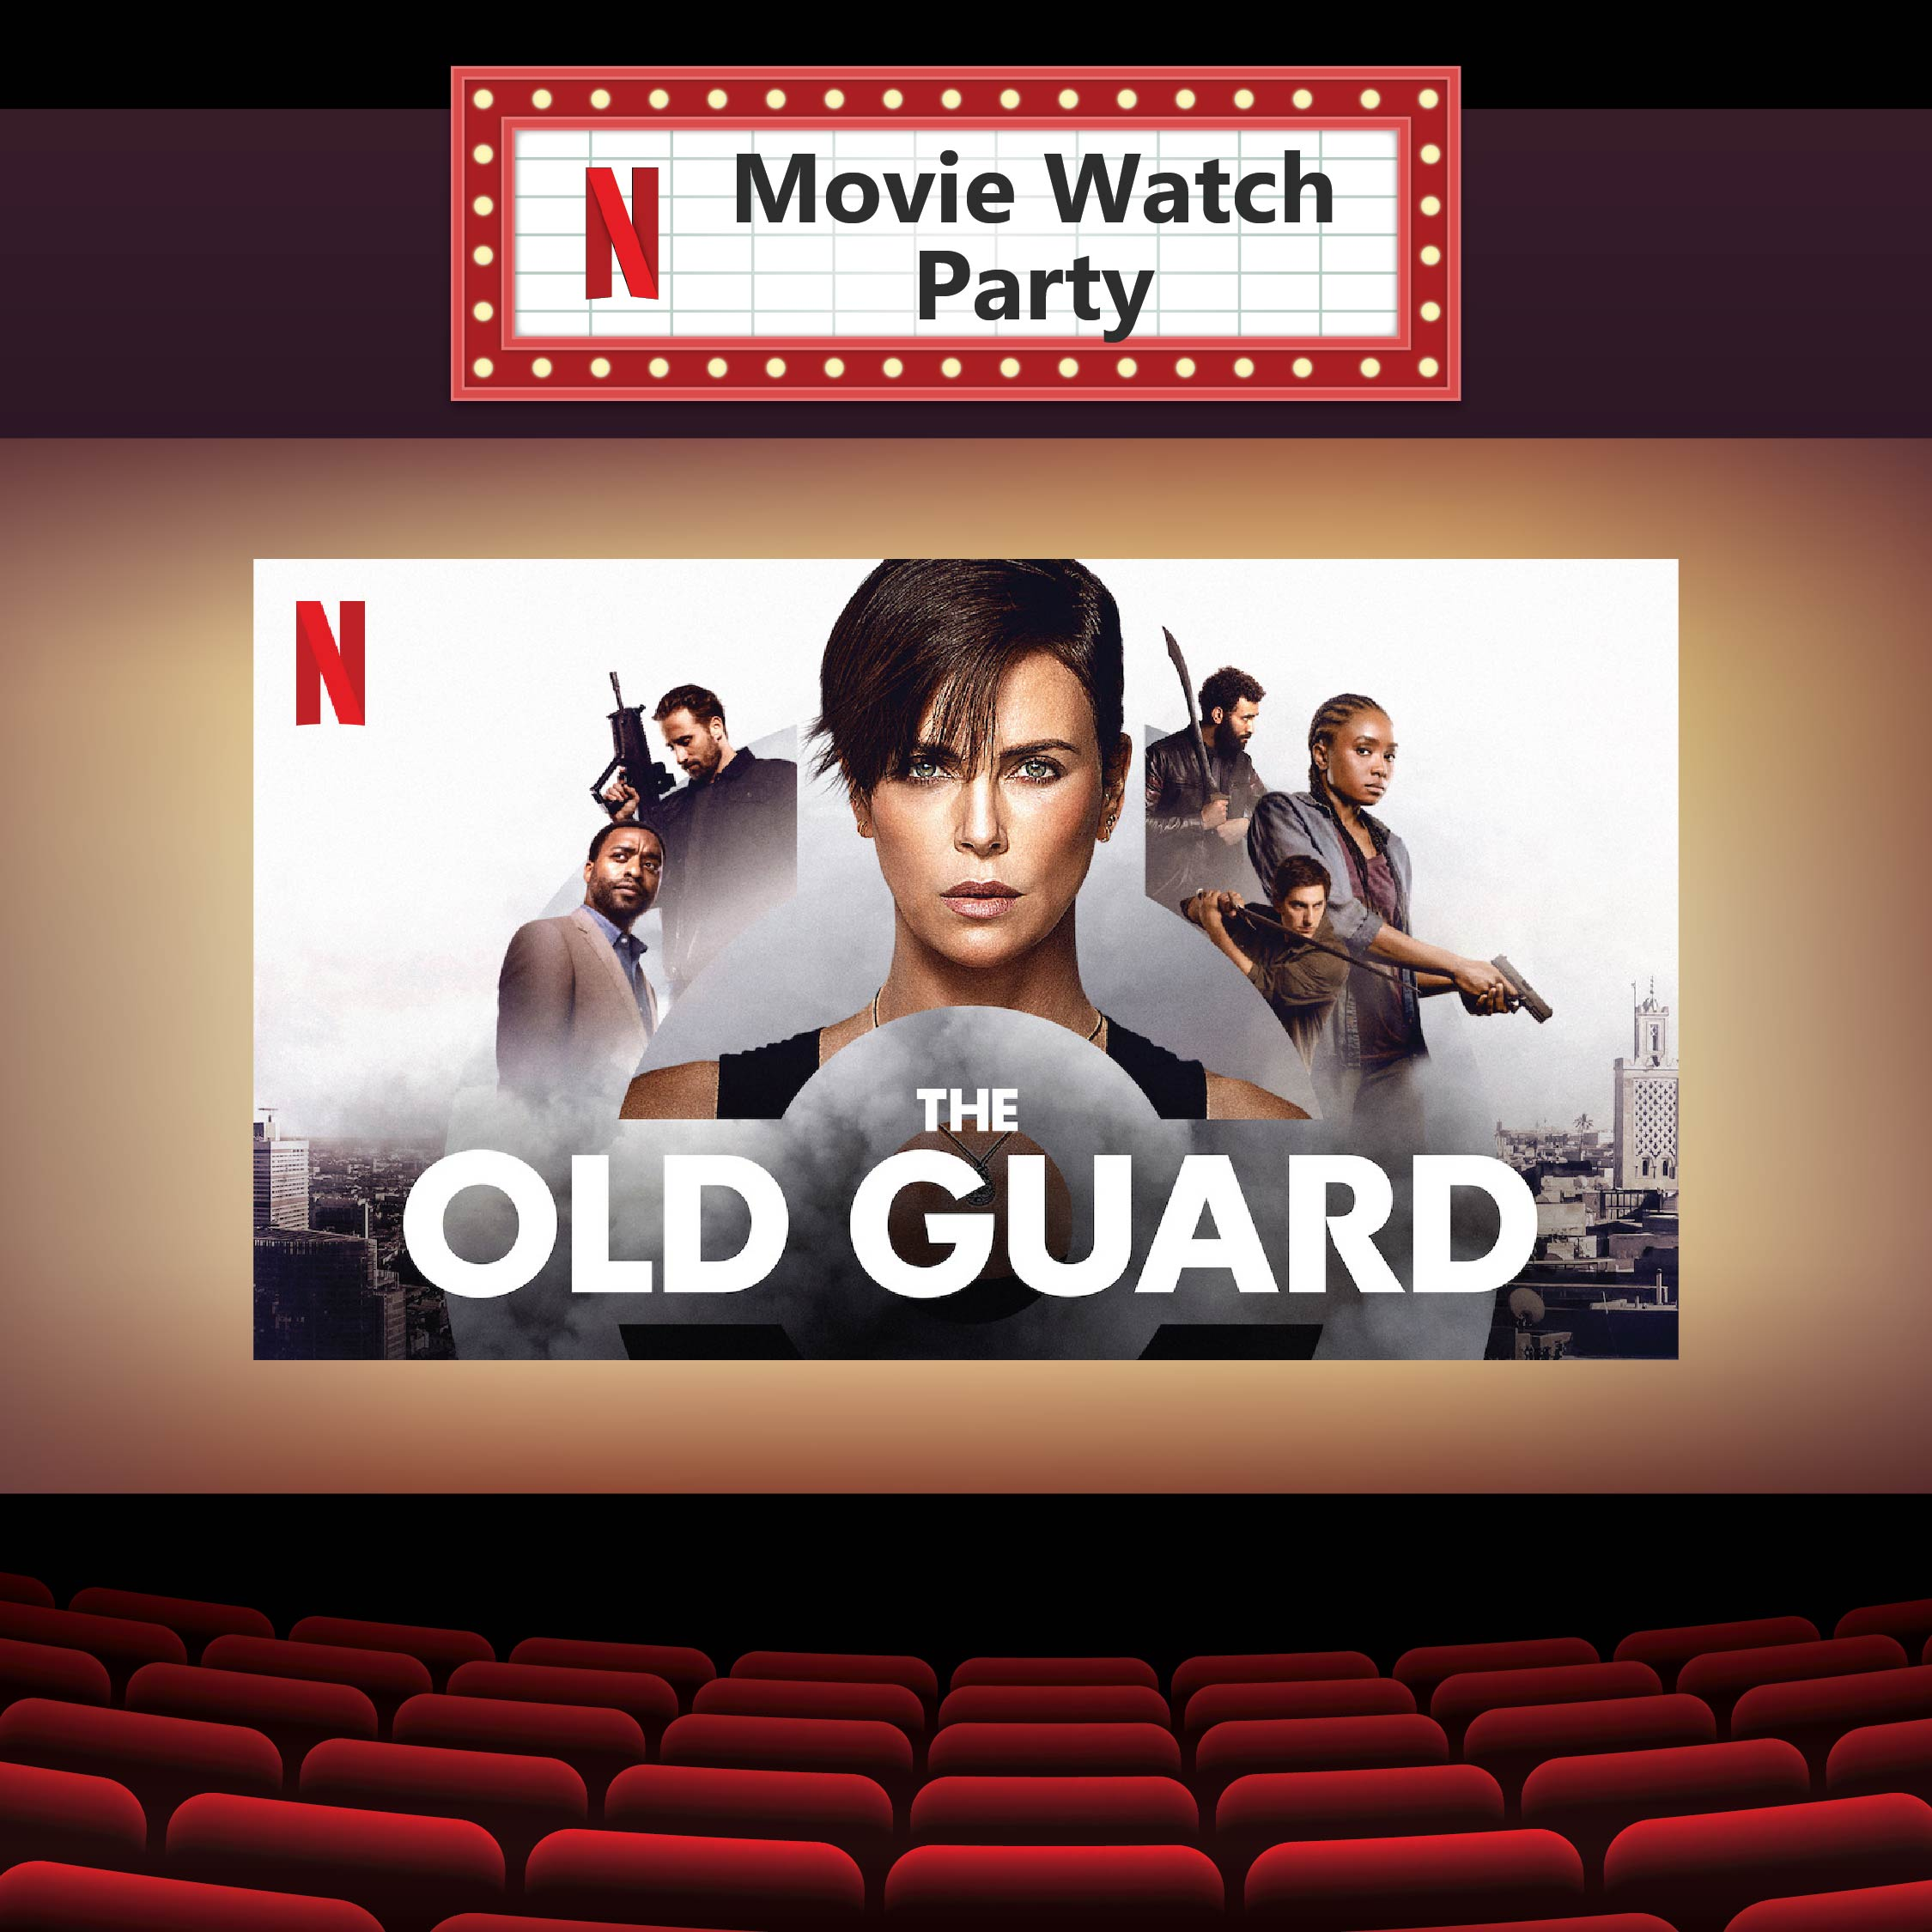 Old Guard Netflix Watch Party